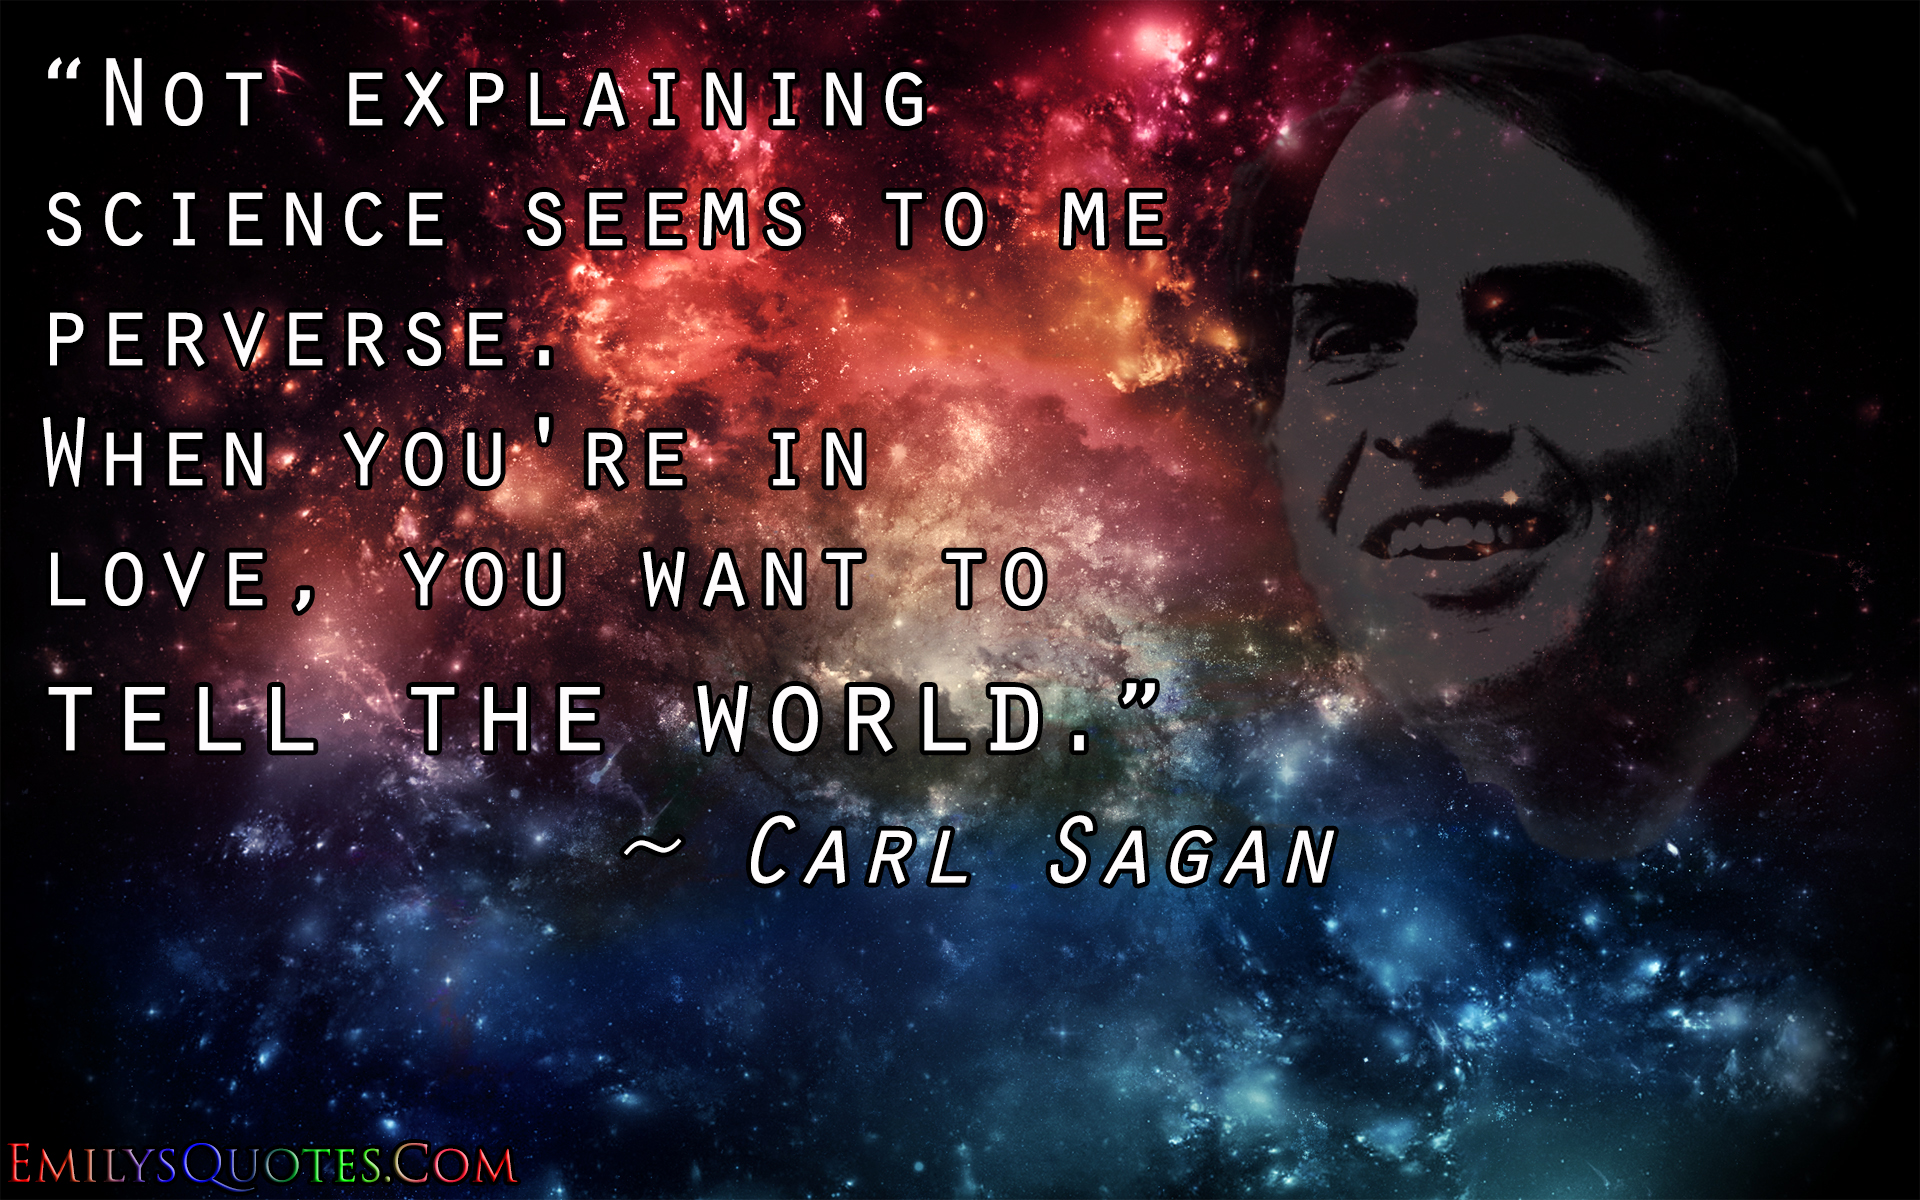 Carl Sagan Love Quote Entrancing Not Explaining Science Seems To Me Perversewhen You're In Love